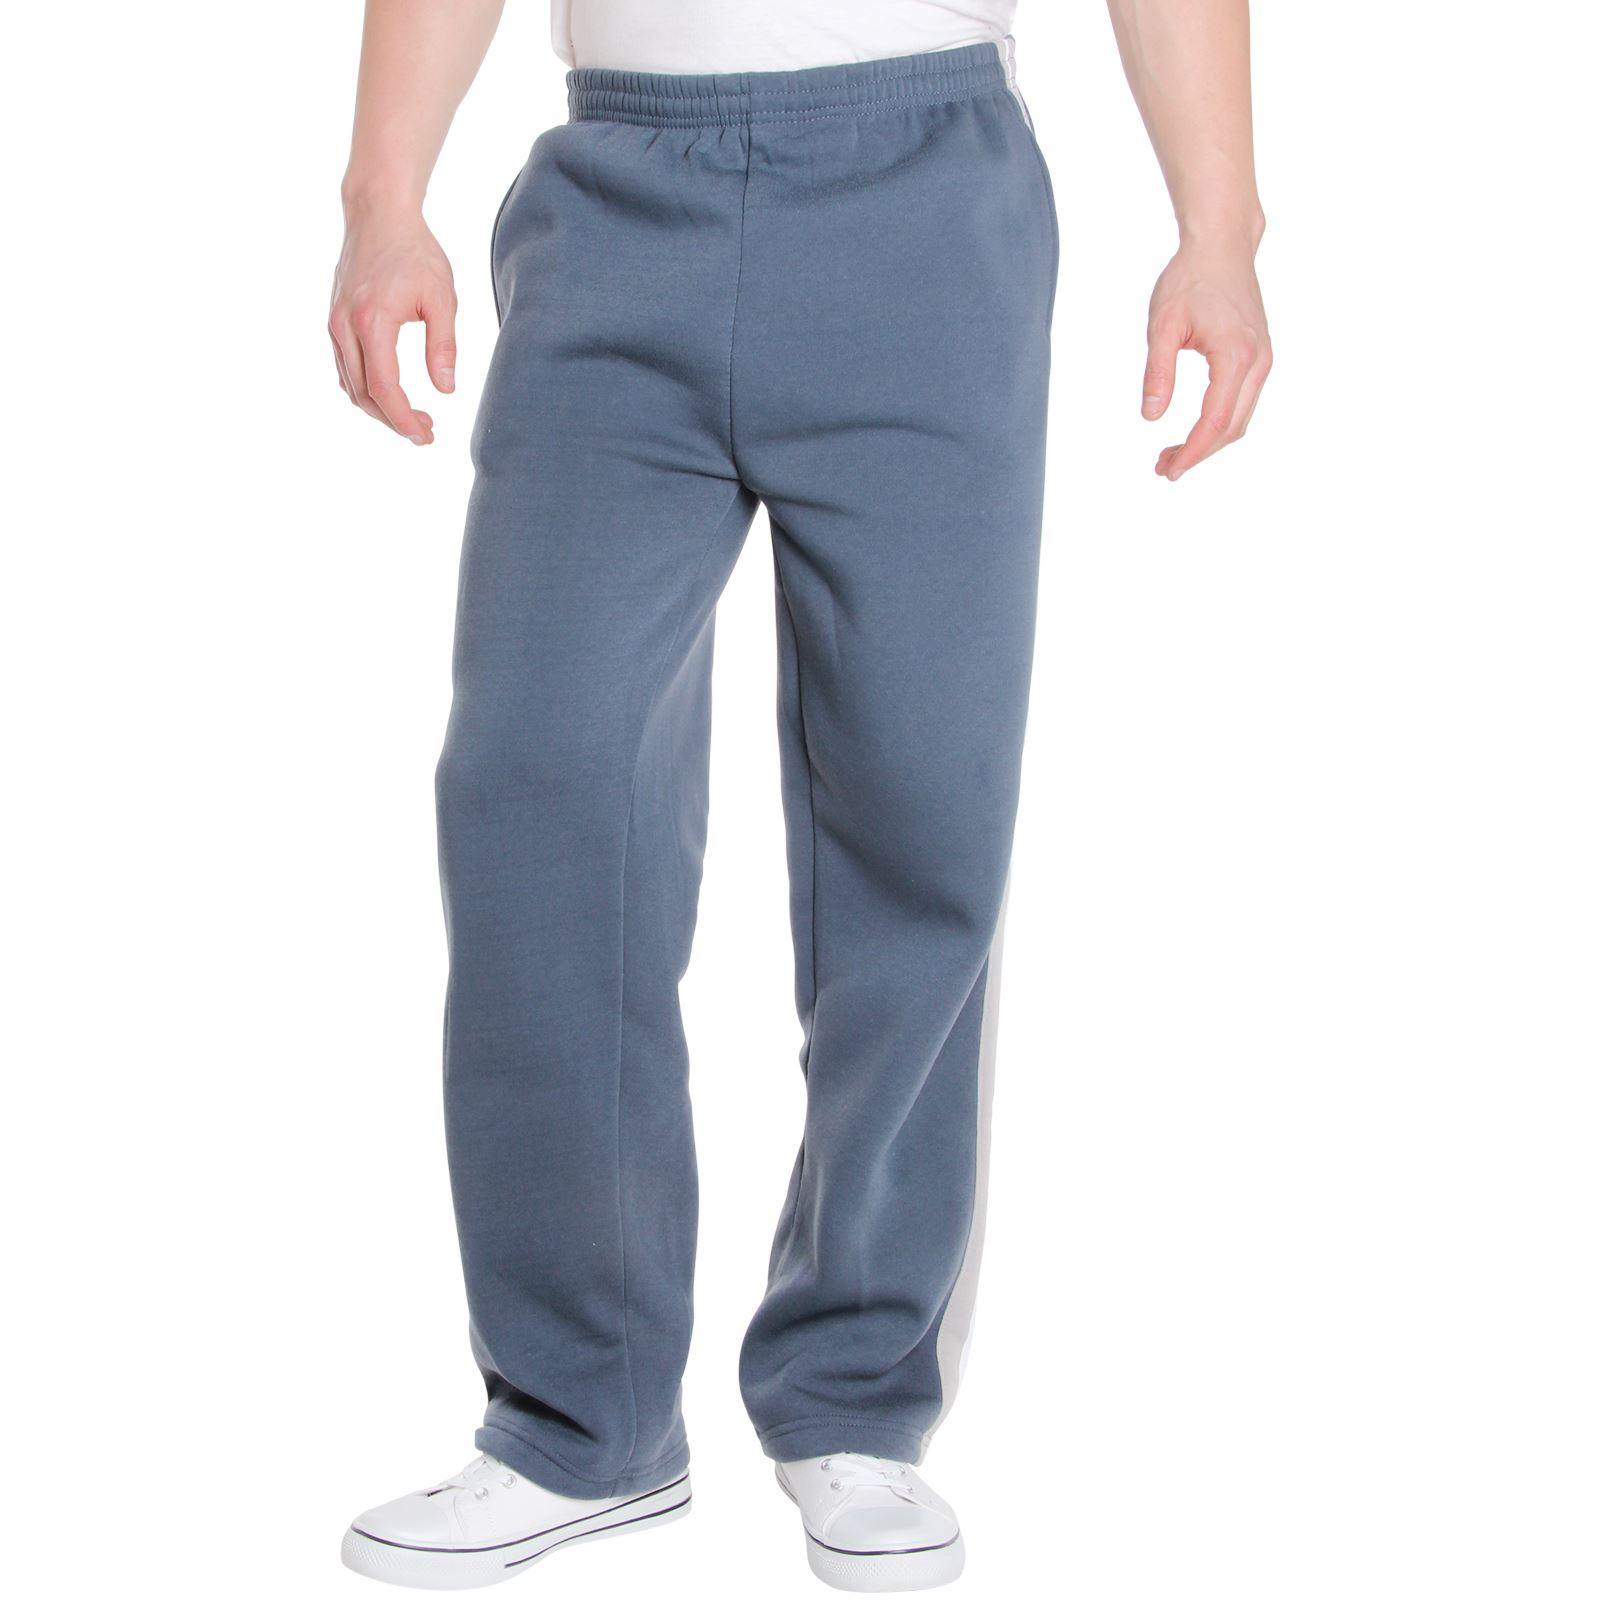 Mens-Tracksuit-Bottoms-Striped-Joggers-Jogging-Trousers-Fleece-Pants-Casual-Work thumbnail 16